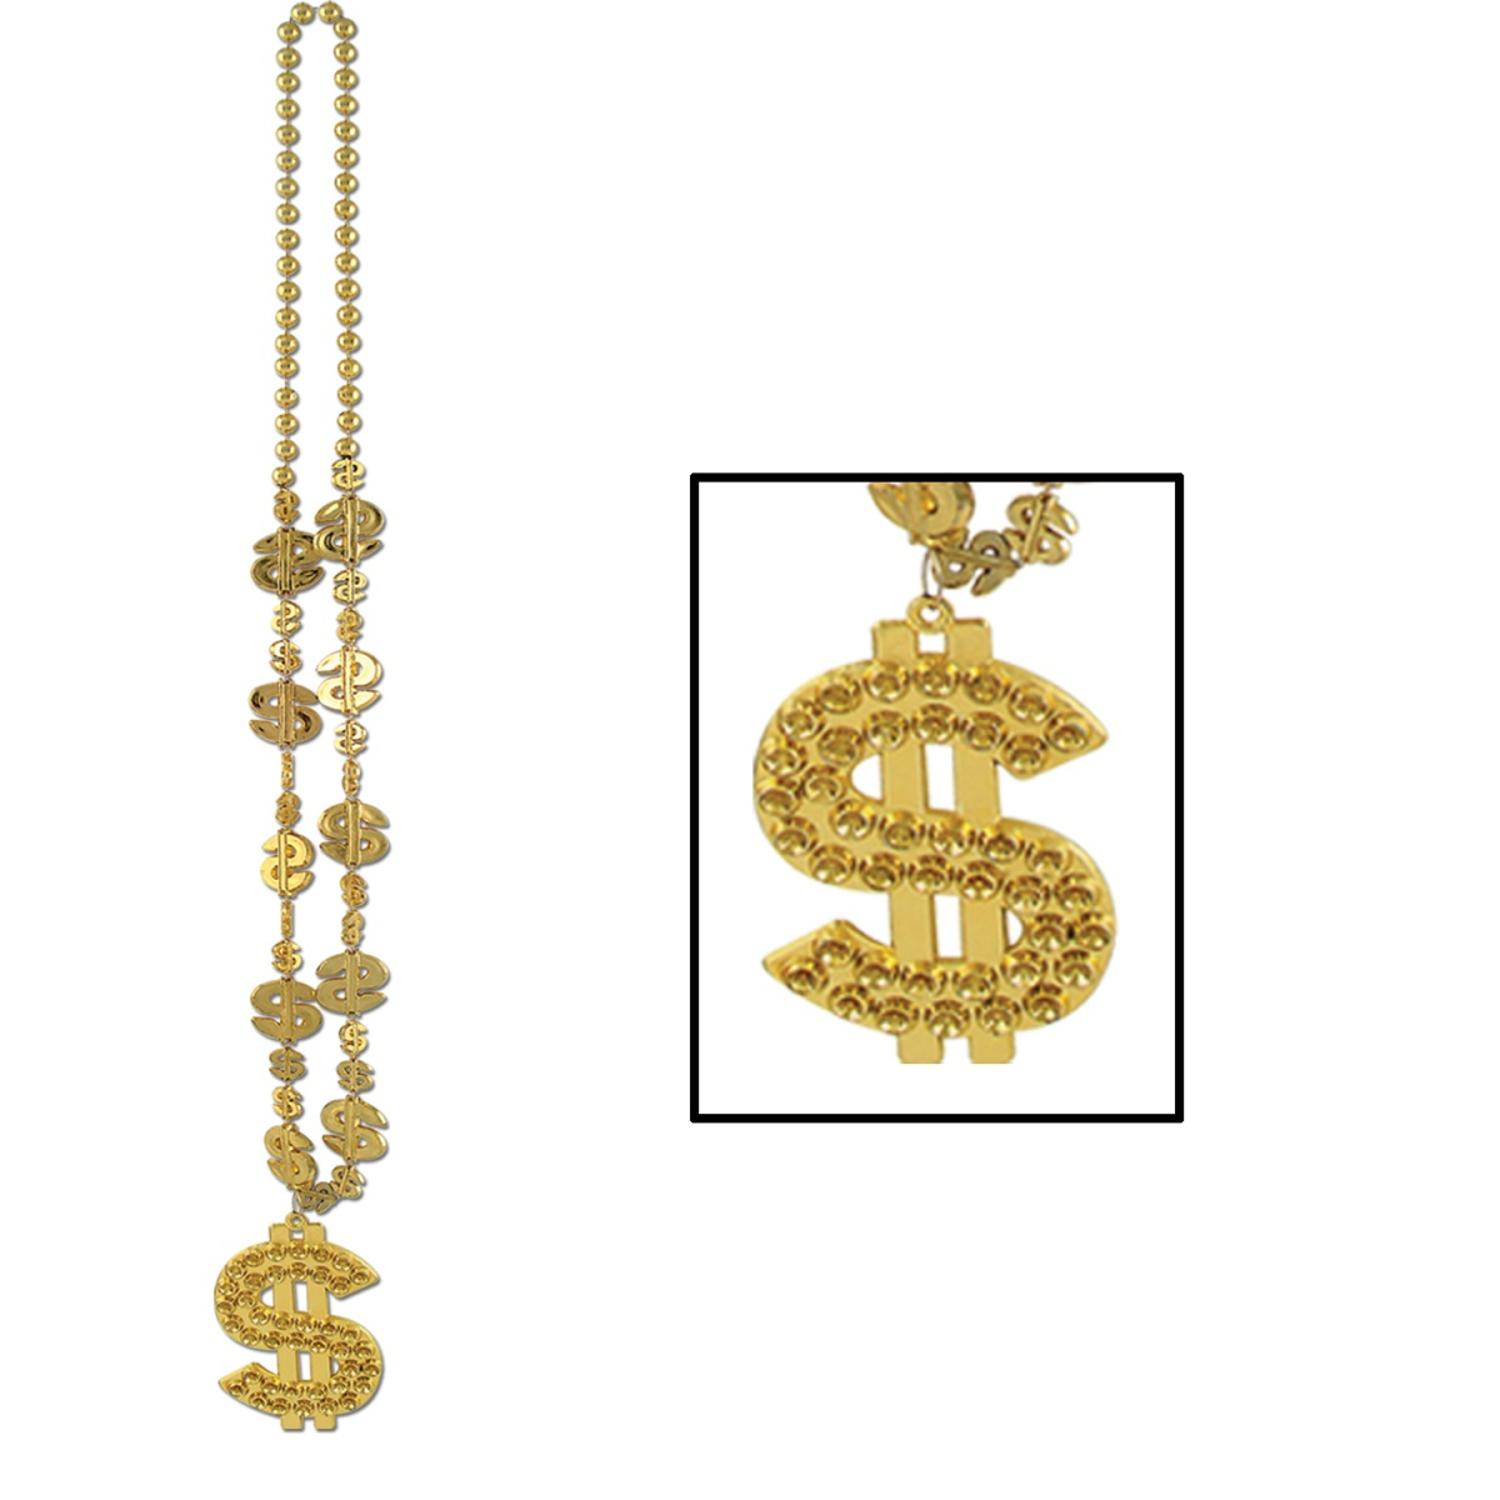 """Club Pack of 12 Shiny Gold Casino Night Beads with """"Dollar Sign"""" Party Necklaces 33"""""""